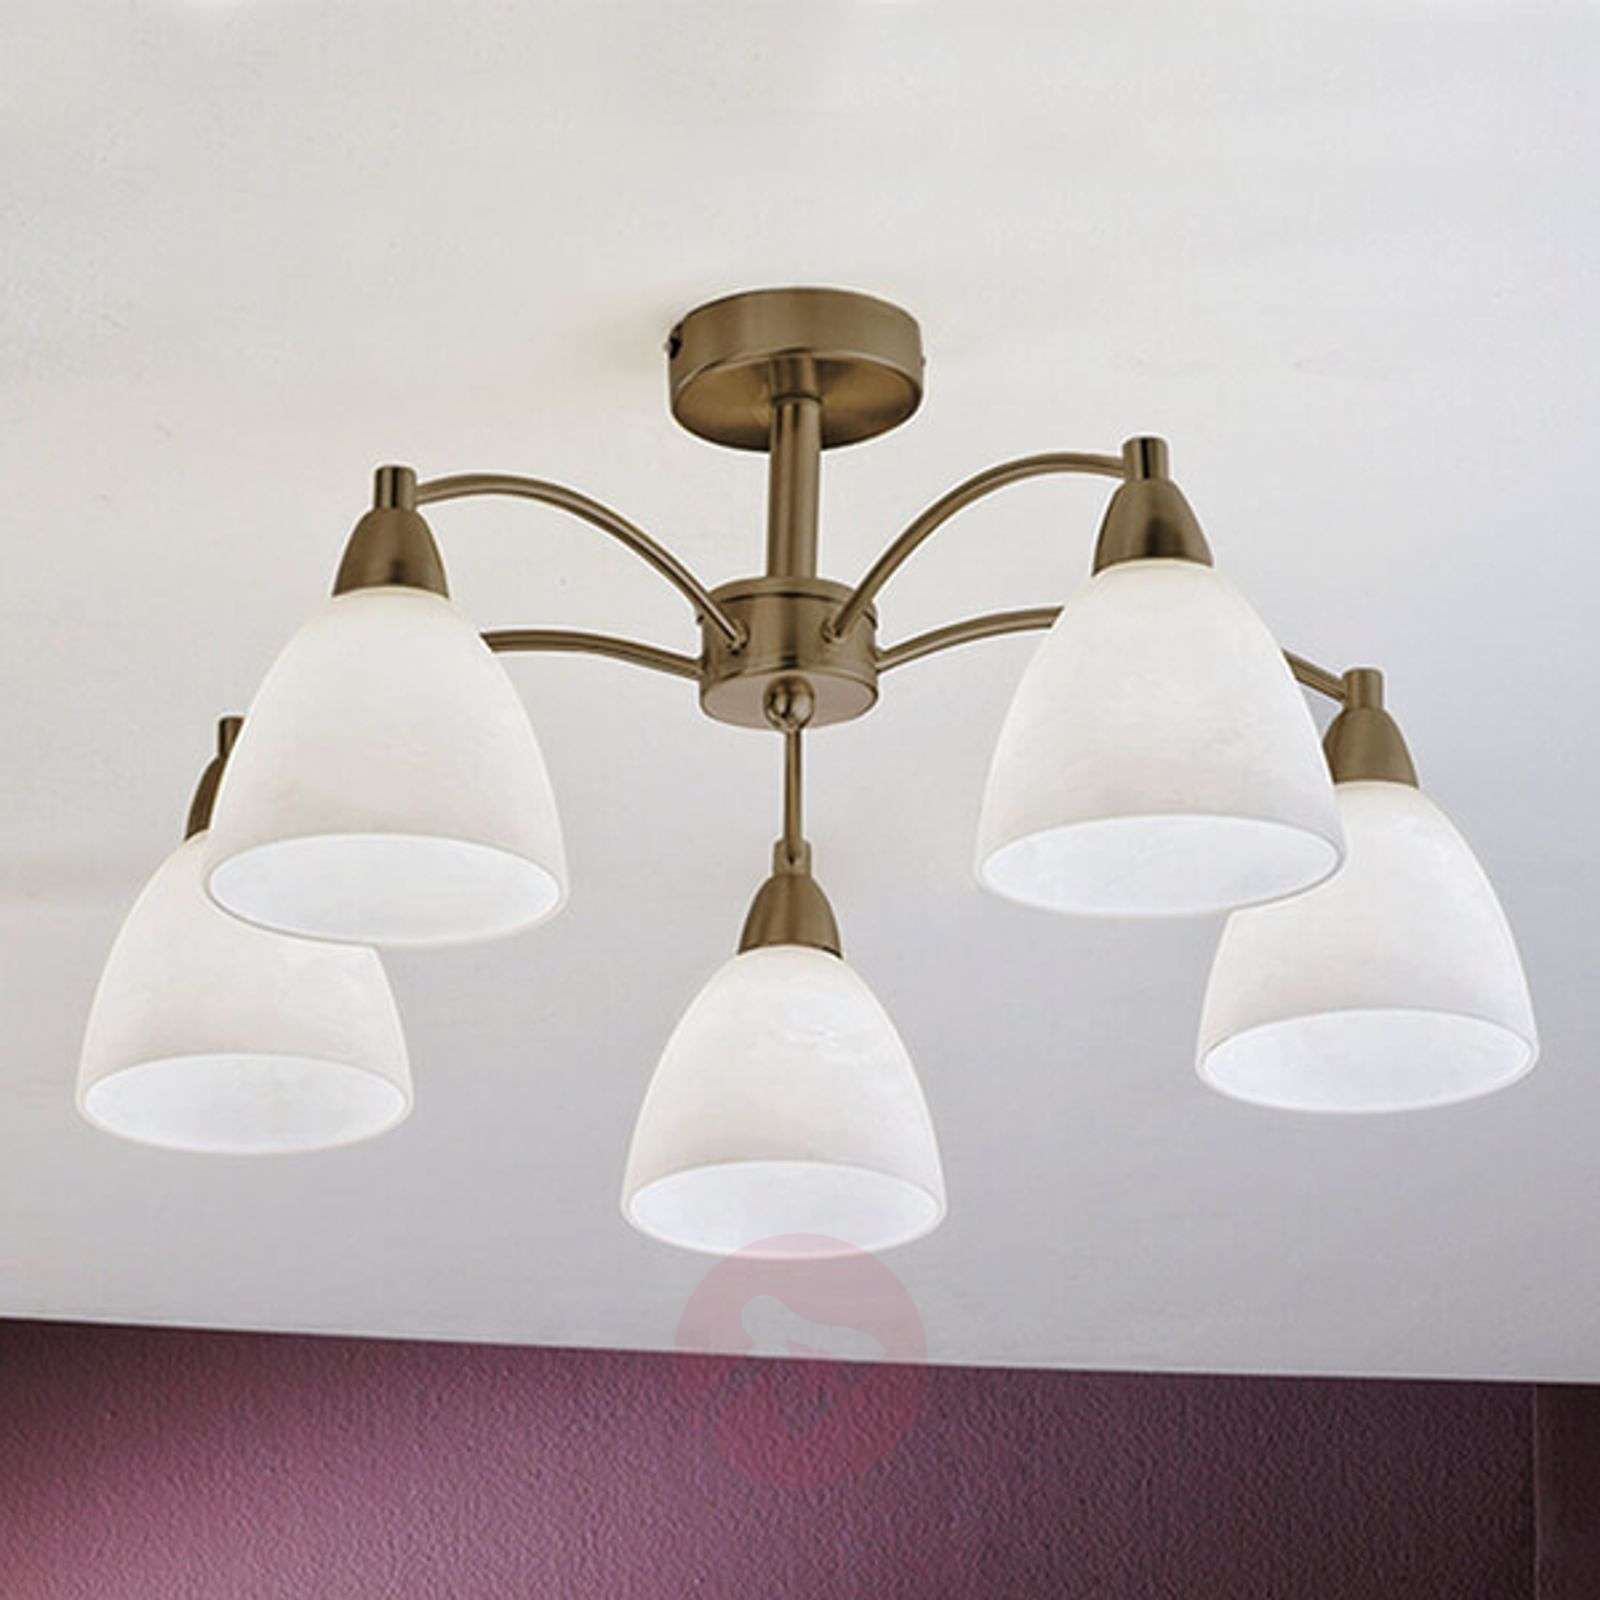 5-bulb ceiling lamp Kinga with antique brass look-7255342-01